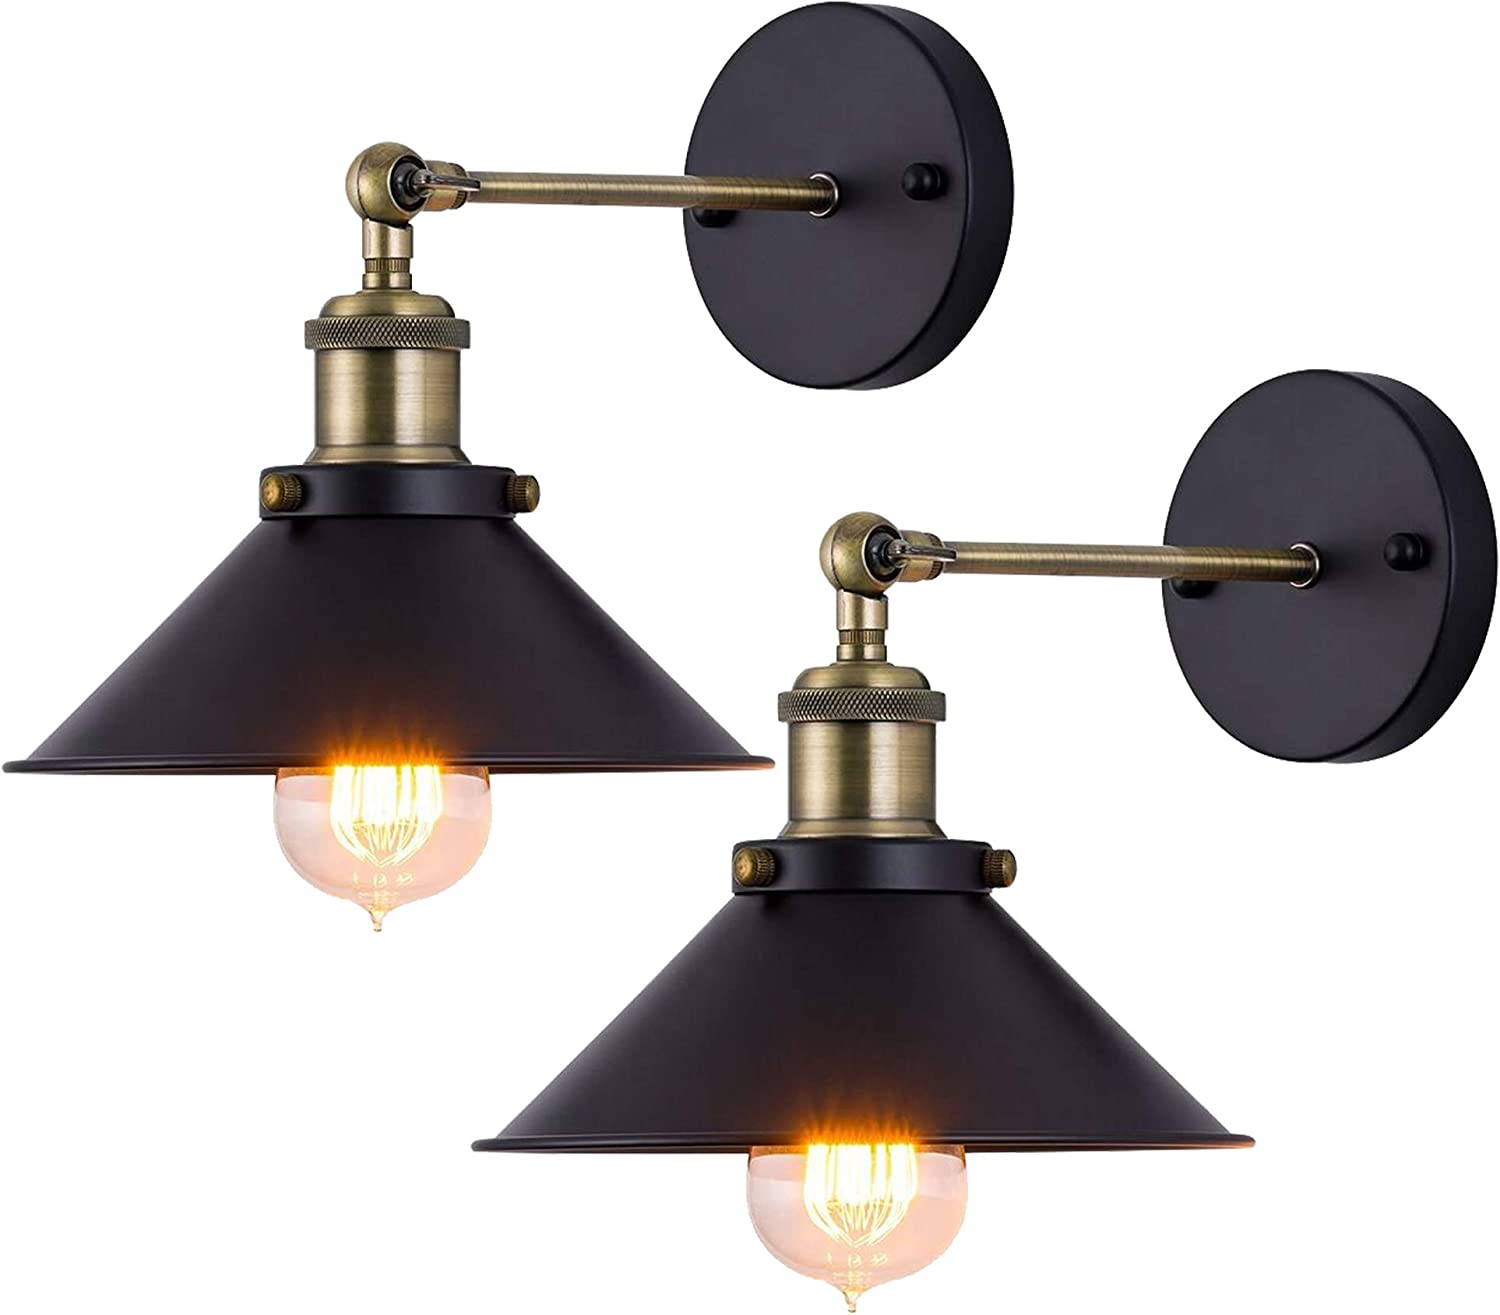 Wall Lights 2 Pack Industrial Wall Lamp E26 Vintage Edison Simplicity Wall Sconce Adjustable Loft Style with Black Metal Shade for Bedroom Cafe Bar Restaurant Office 2 Pack,E26 Bulb not Included